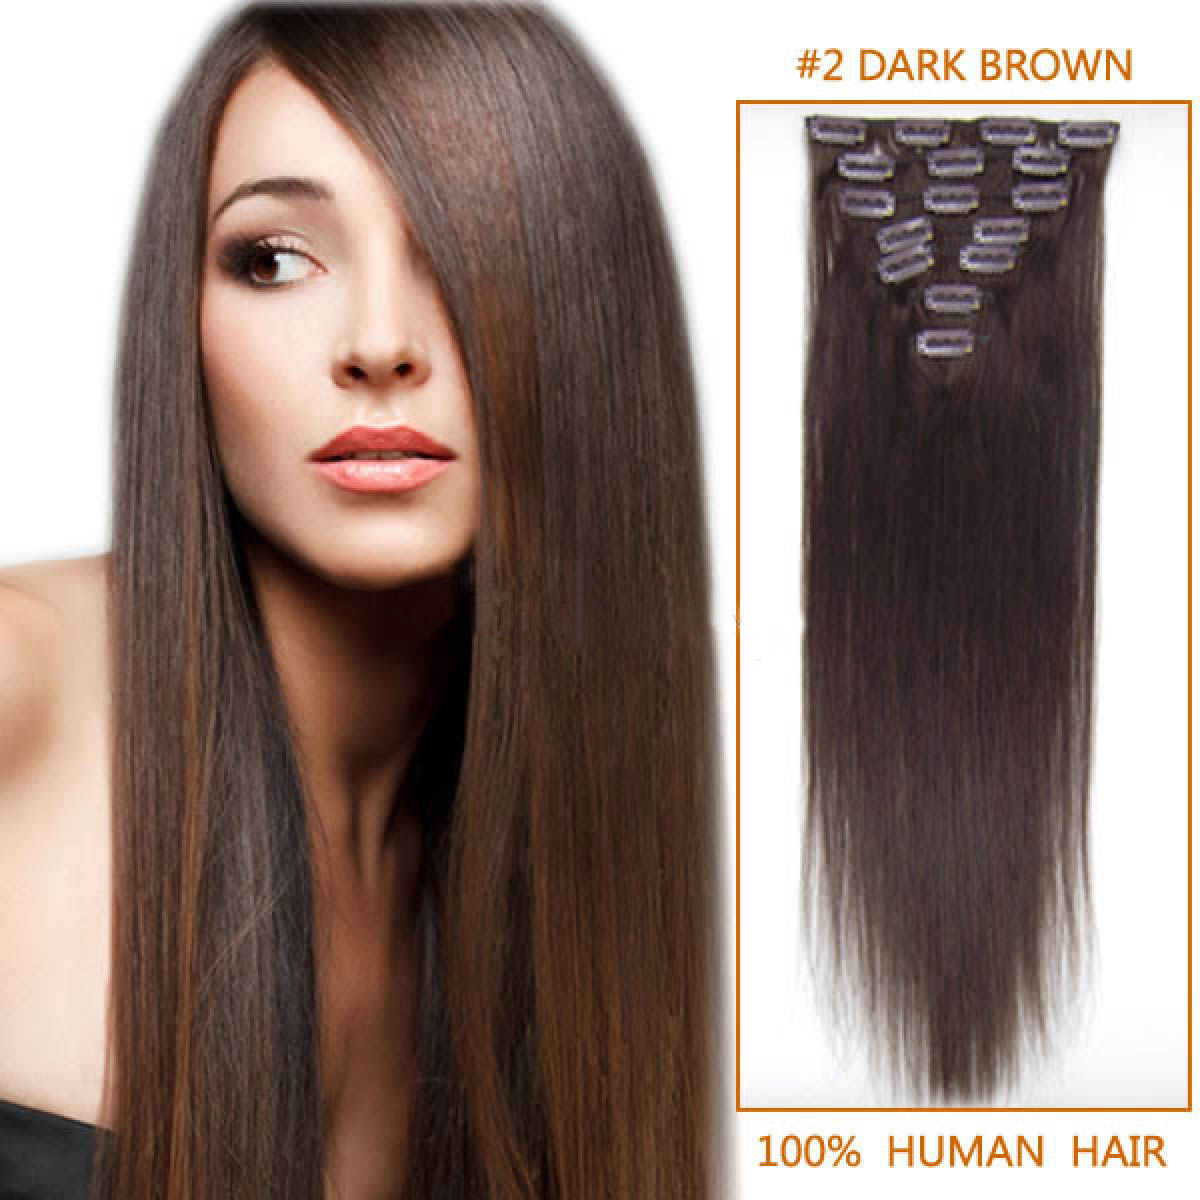 Inch 2 dark brown clip in human hair extensions 11pcs 28 inch 2 dark brown clip in human hair extensions 11pcs pmusecretfo Image collections